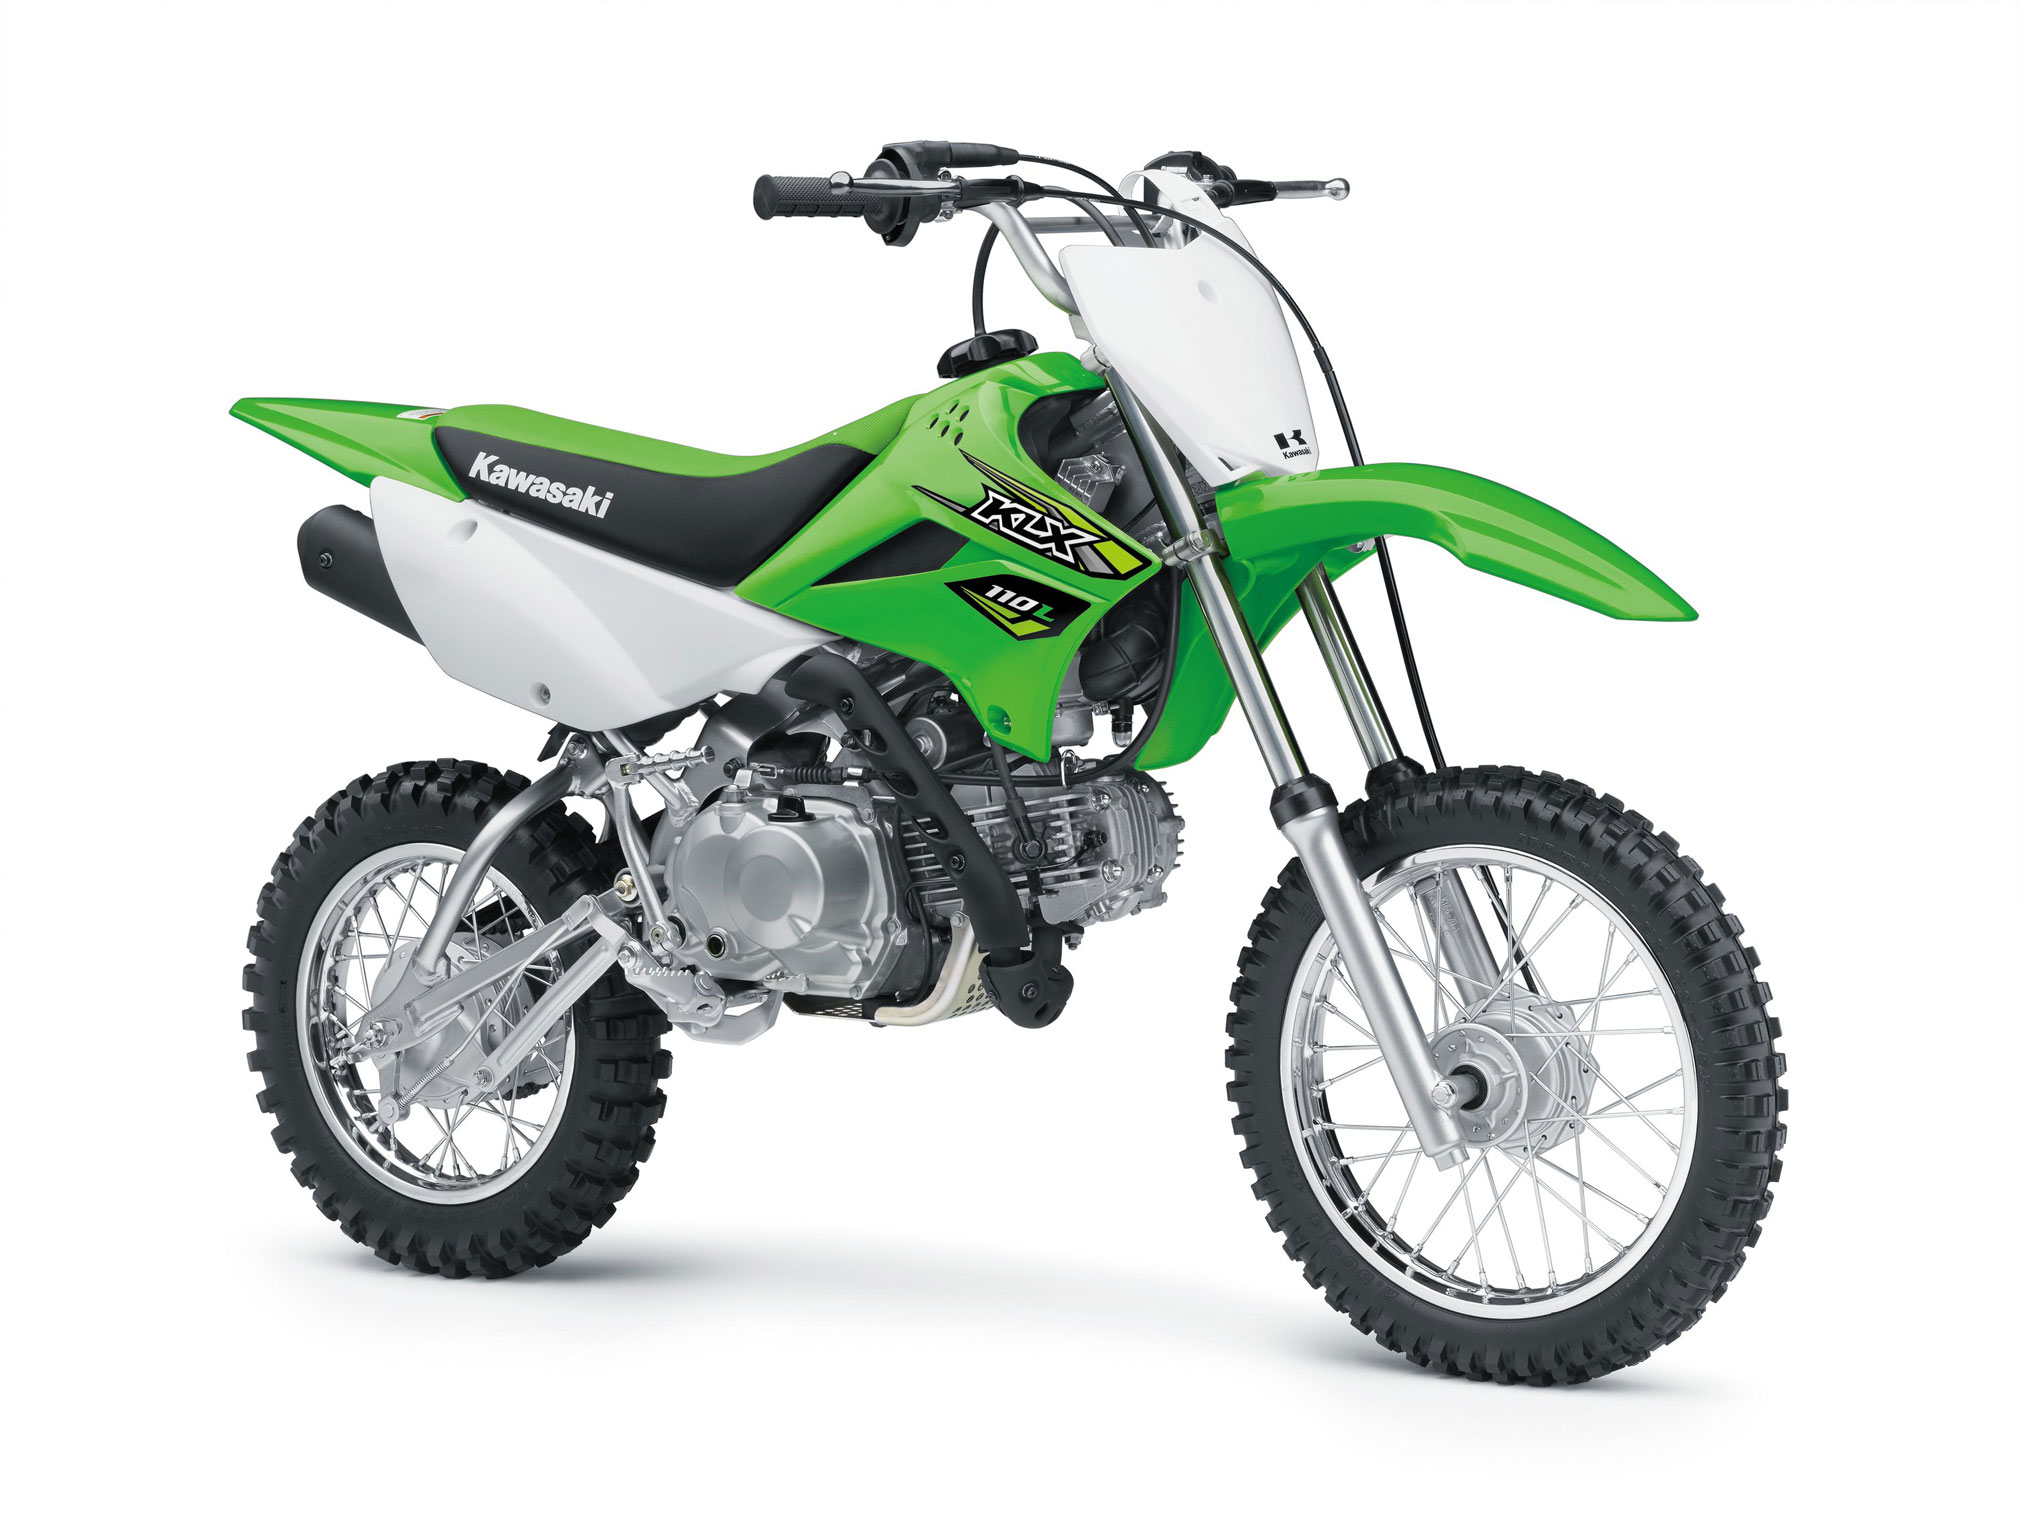 Kawasaki Klxs Seat Height